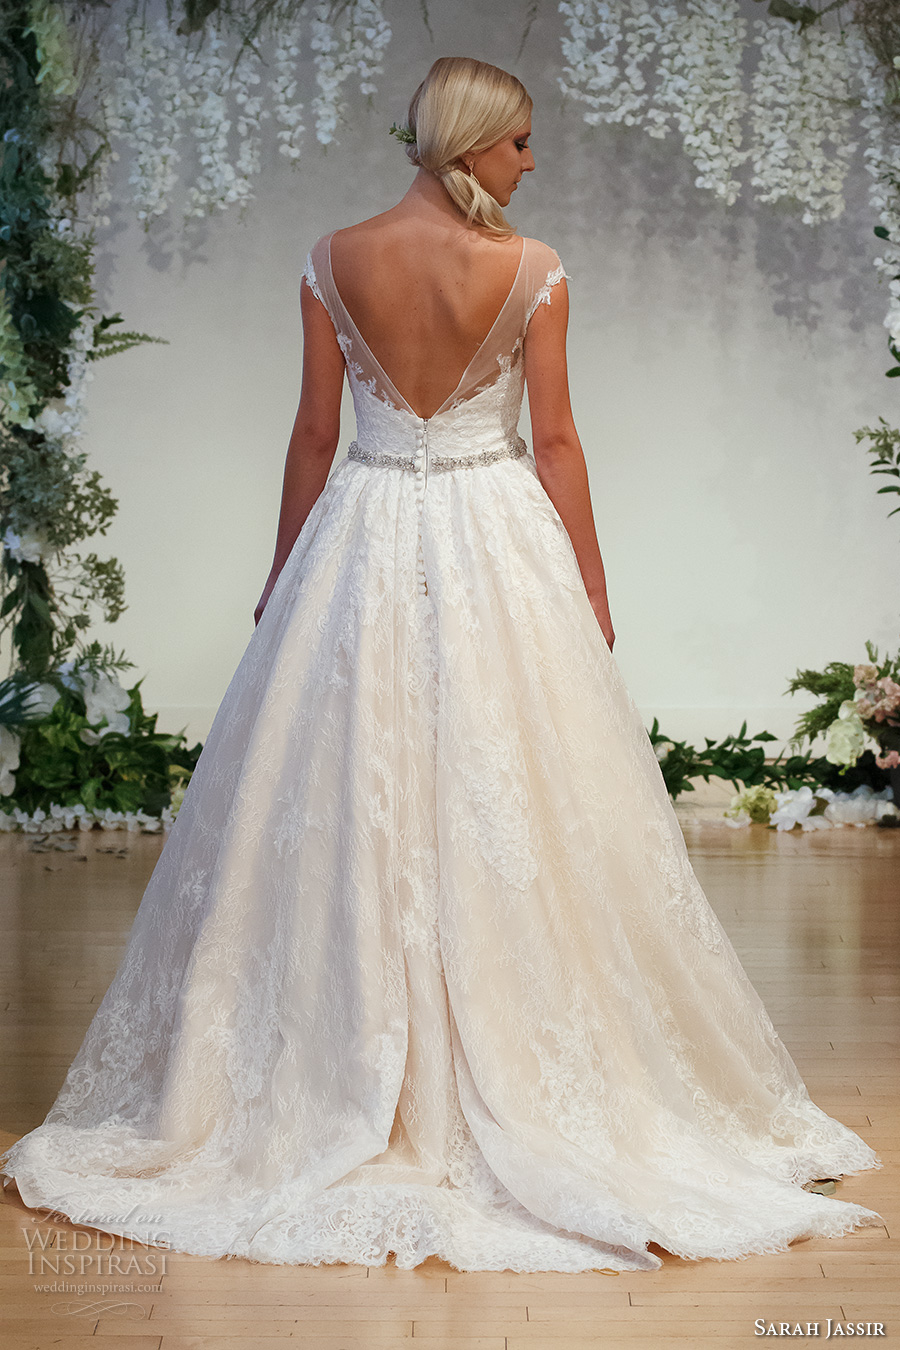 sarah jassir 2017 bridal cap sleeves illusion bateau neck deep sweetheart neck full embellishment romantic classic a  line wedding dress v back sweep train (6) bv